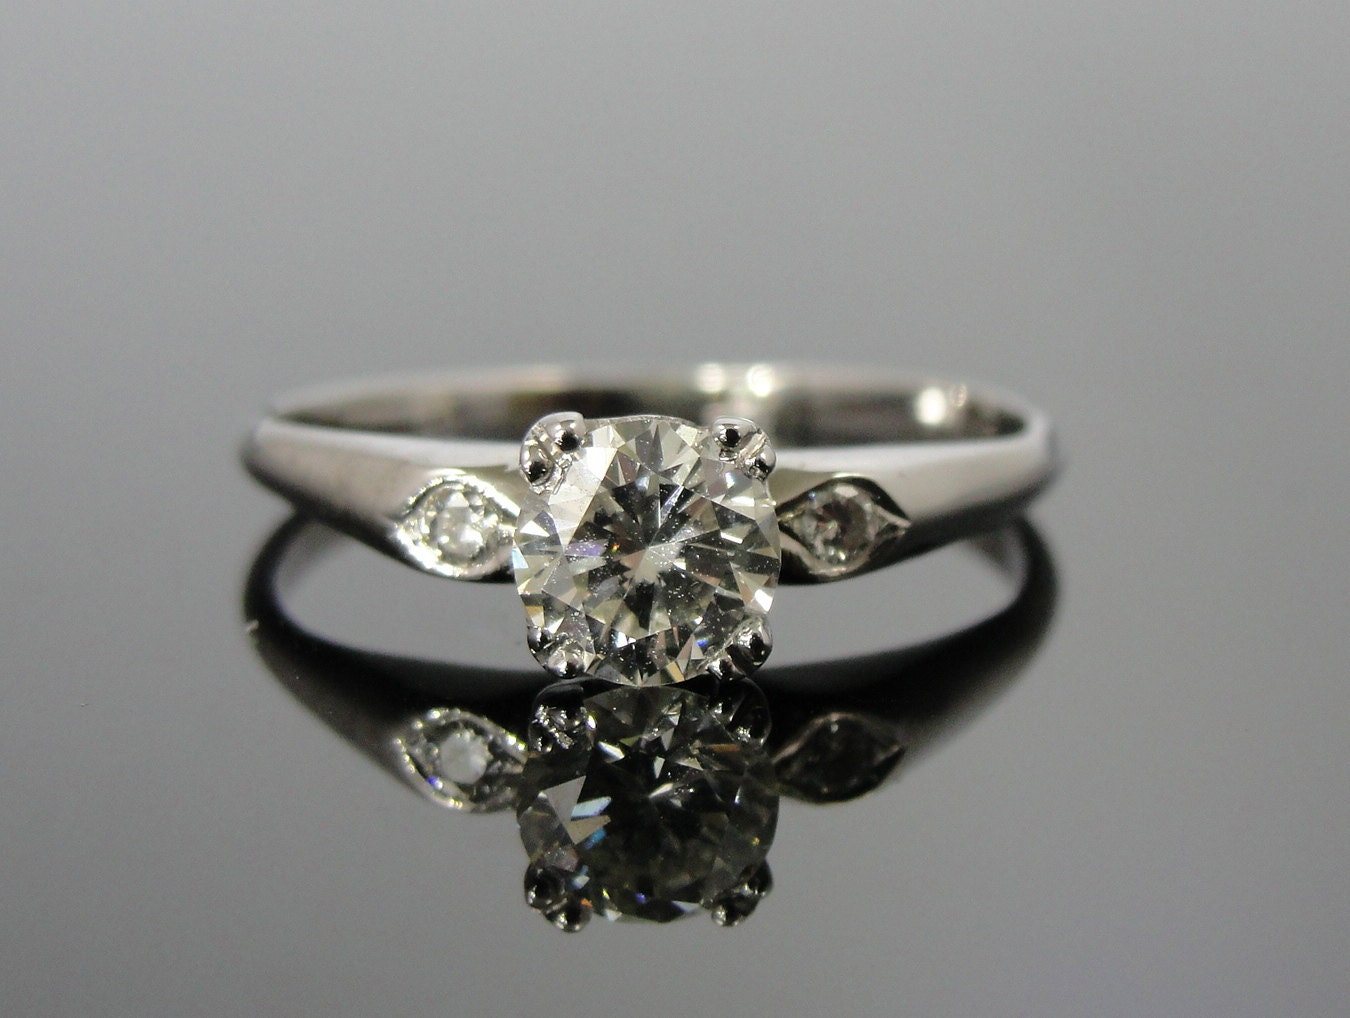 simple white gold diamond engagement ring vintage 1950s mid. Black Bedroom Furniture Sets. Home Design Ideas